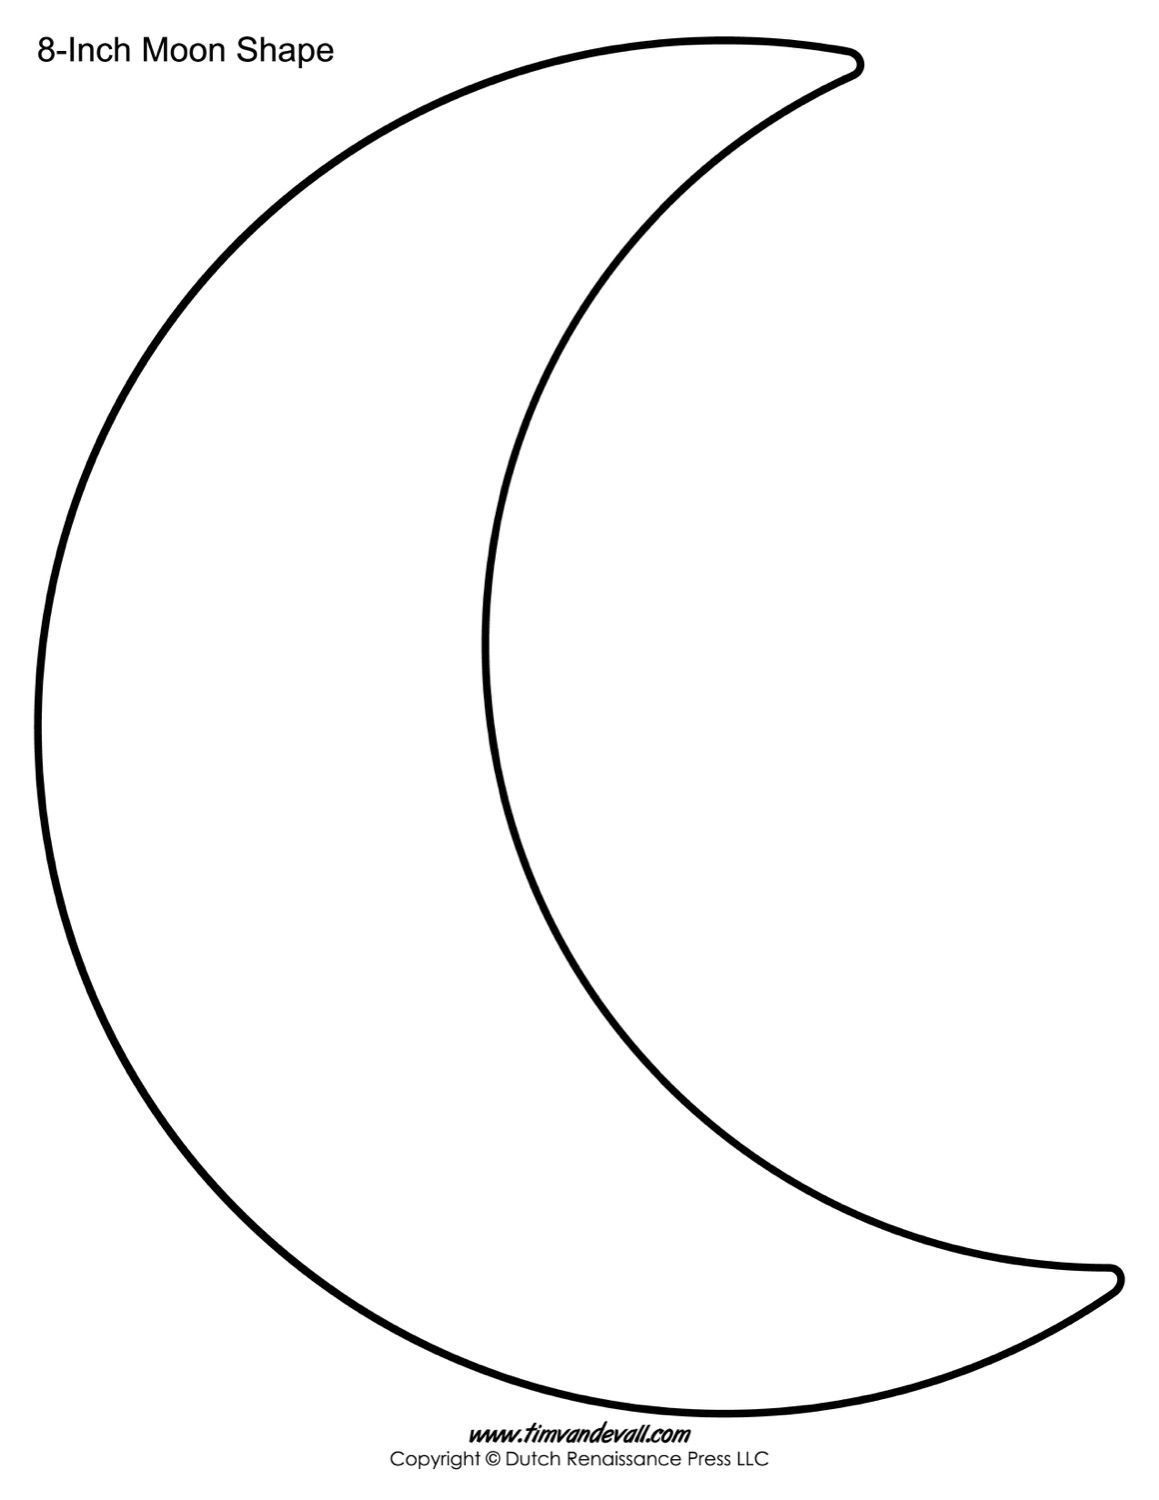 Blank Moon Templates With Images